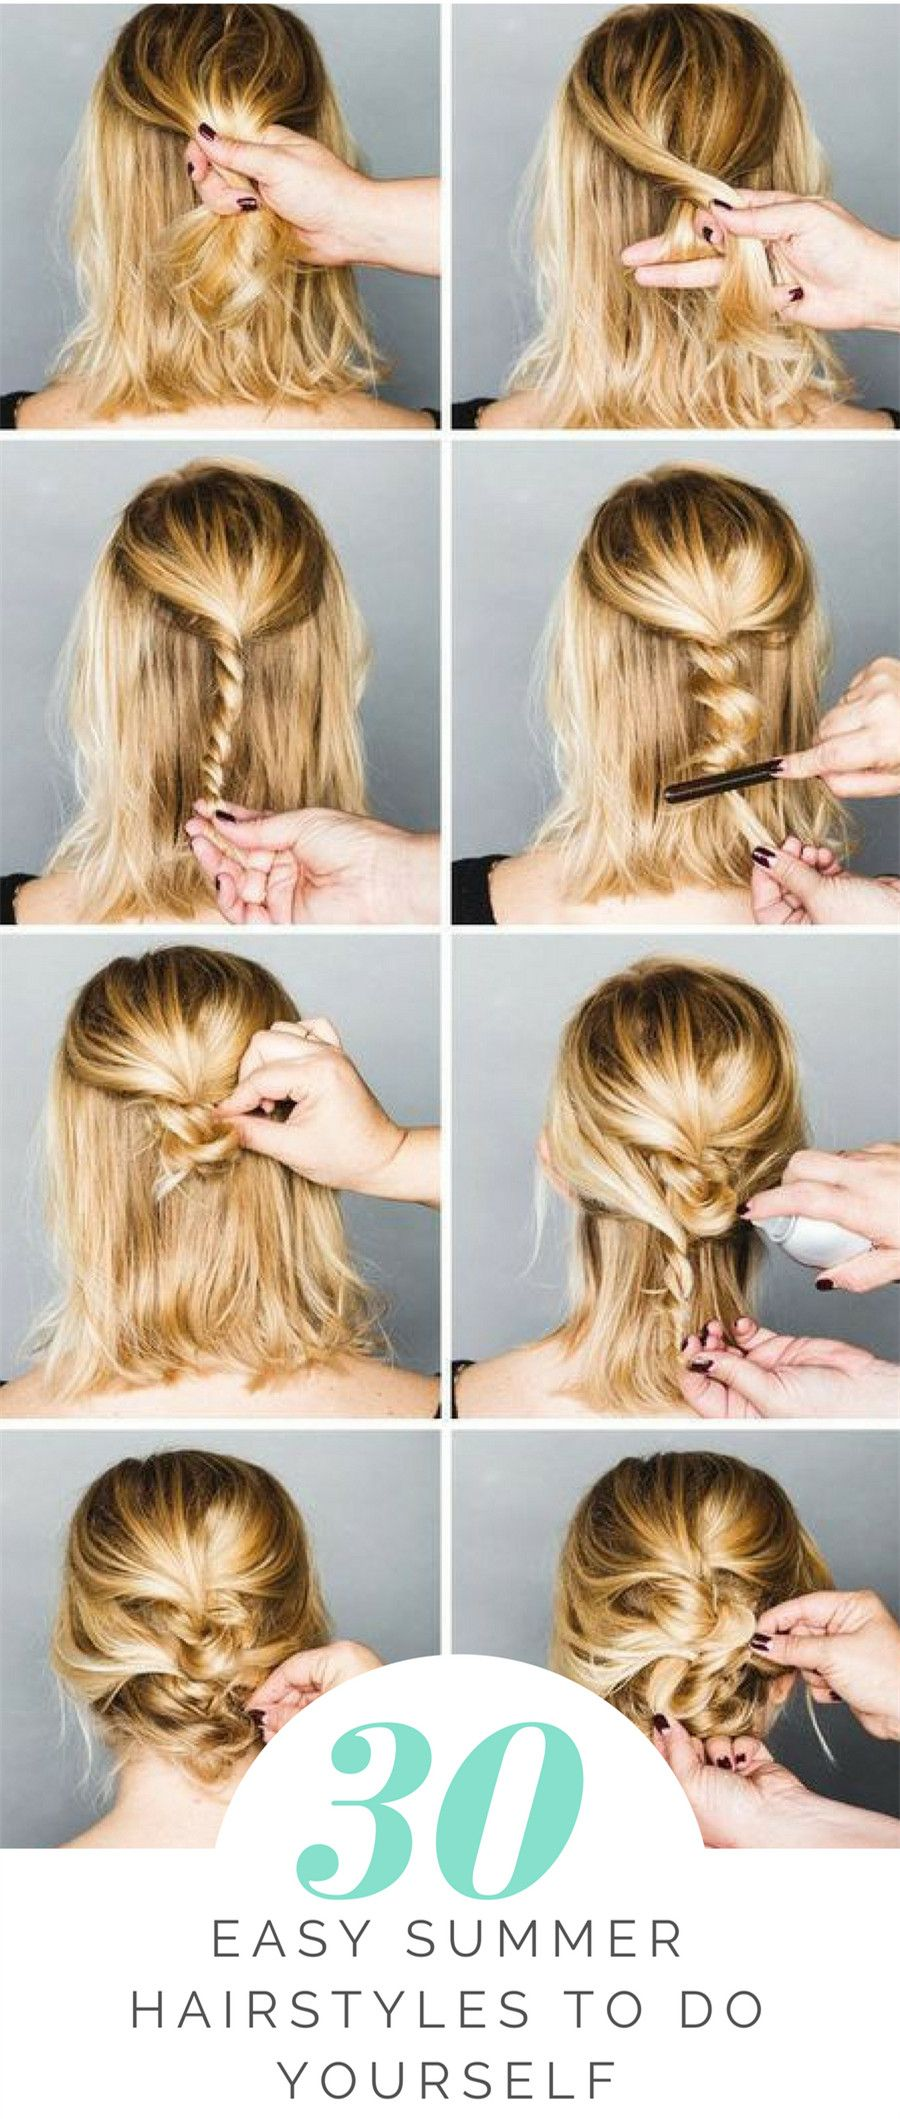 30+ Easy Summer Hairstyles to Do Yourself | 30+ Easy Summer ...